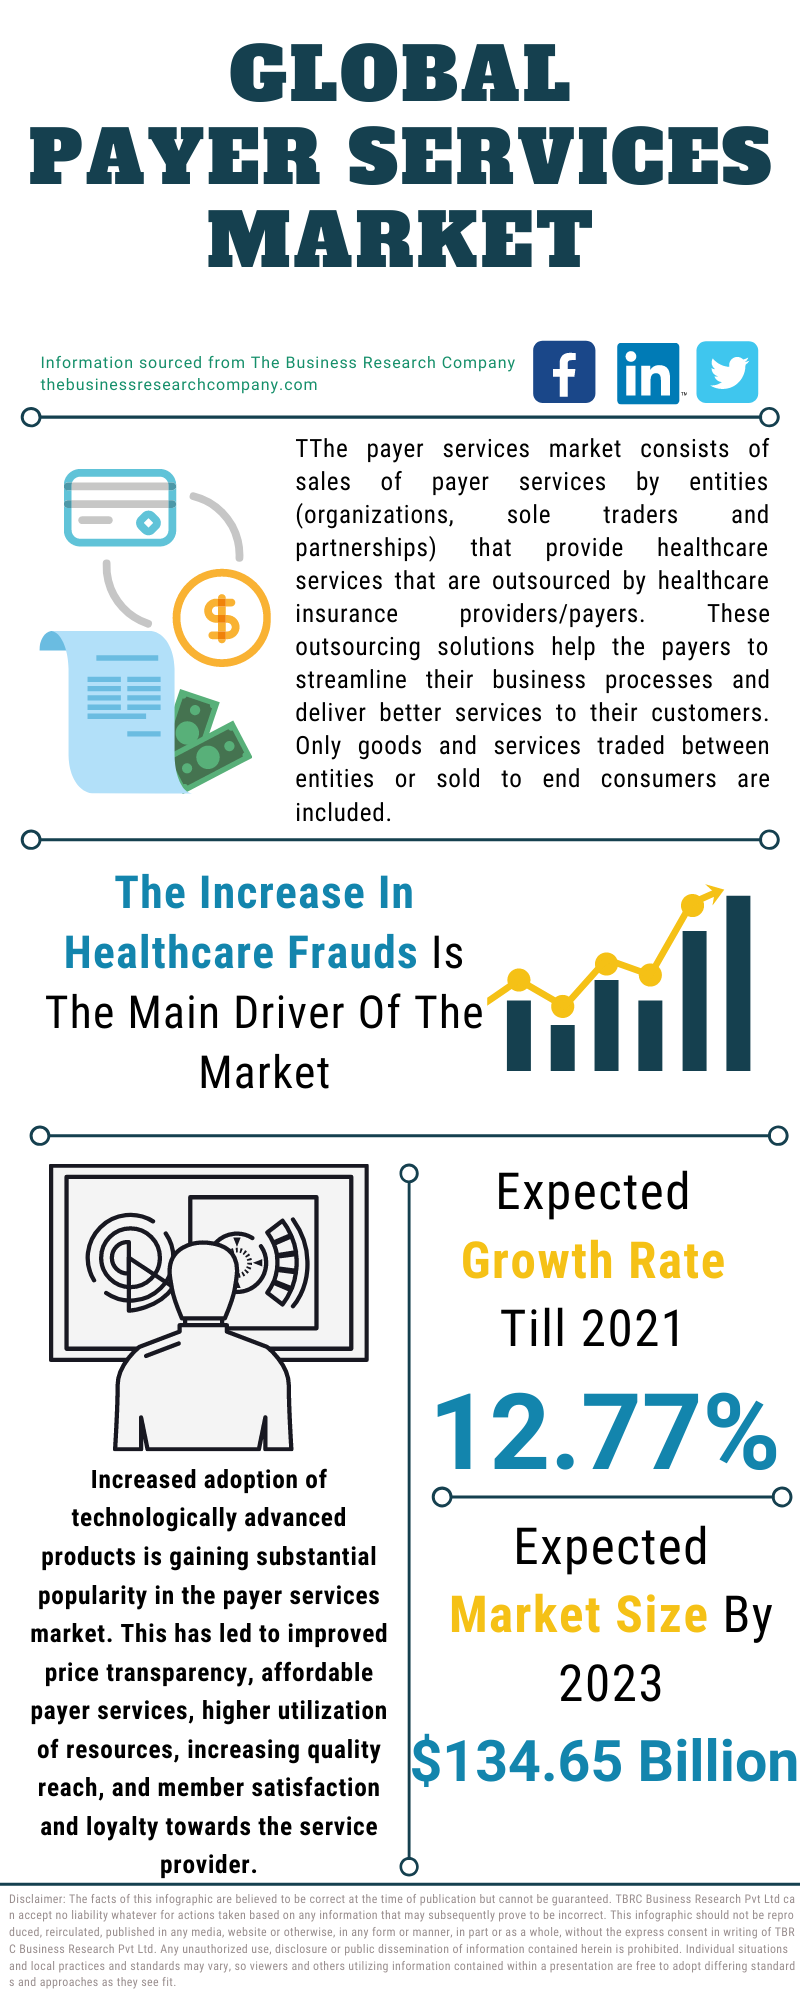 Payer Services Market